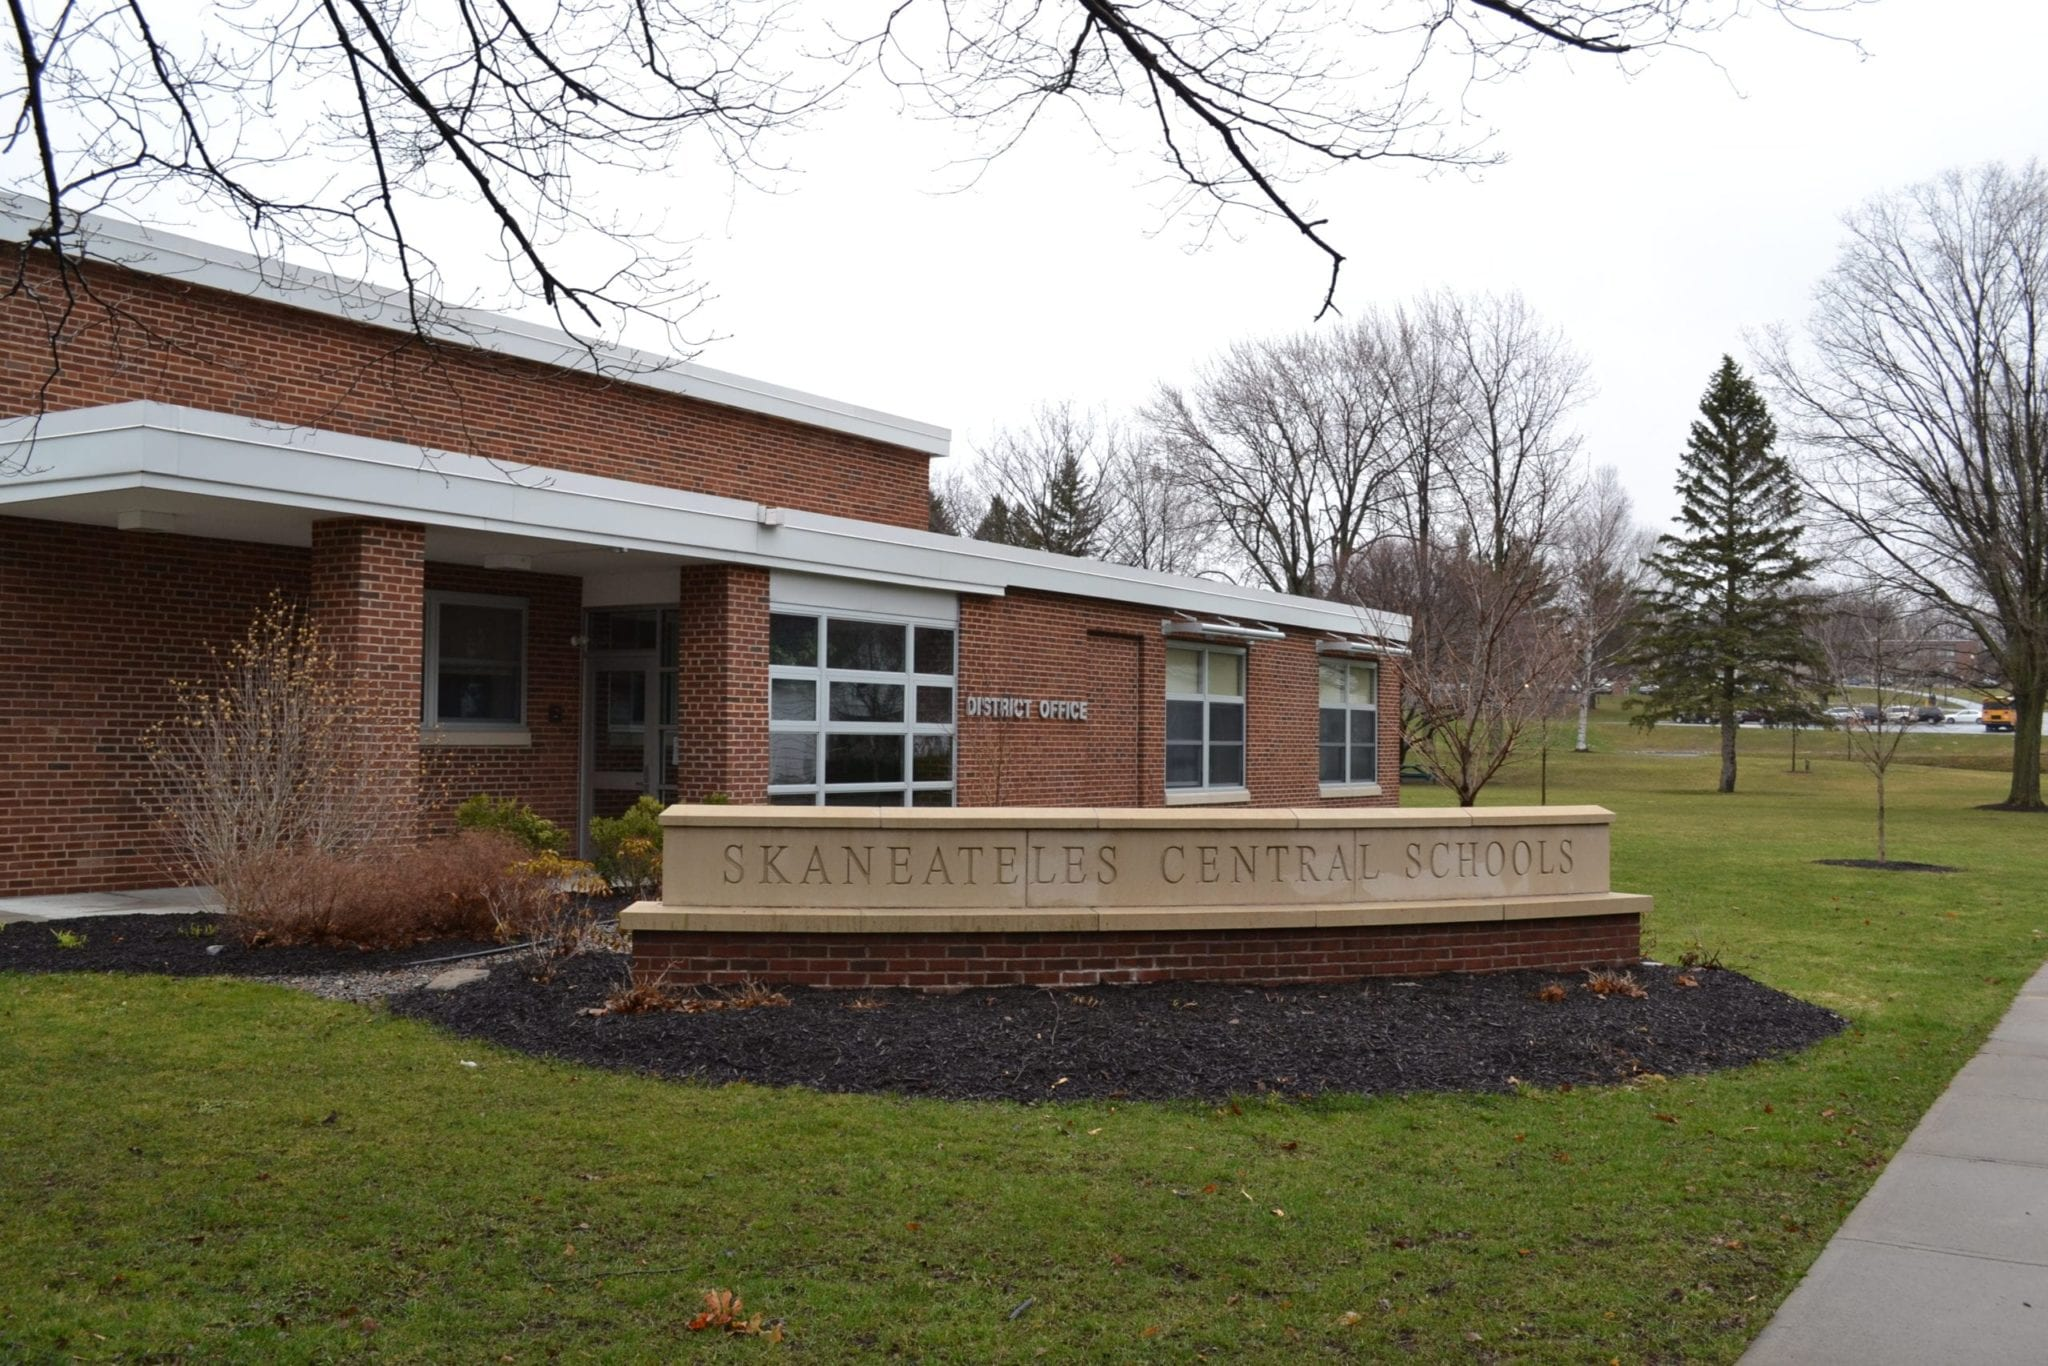 Skaneateles school board to discuss sharing administrative services with Weedsport